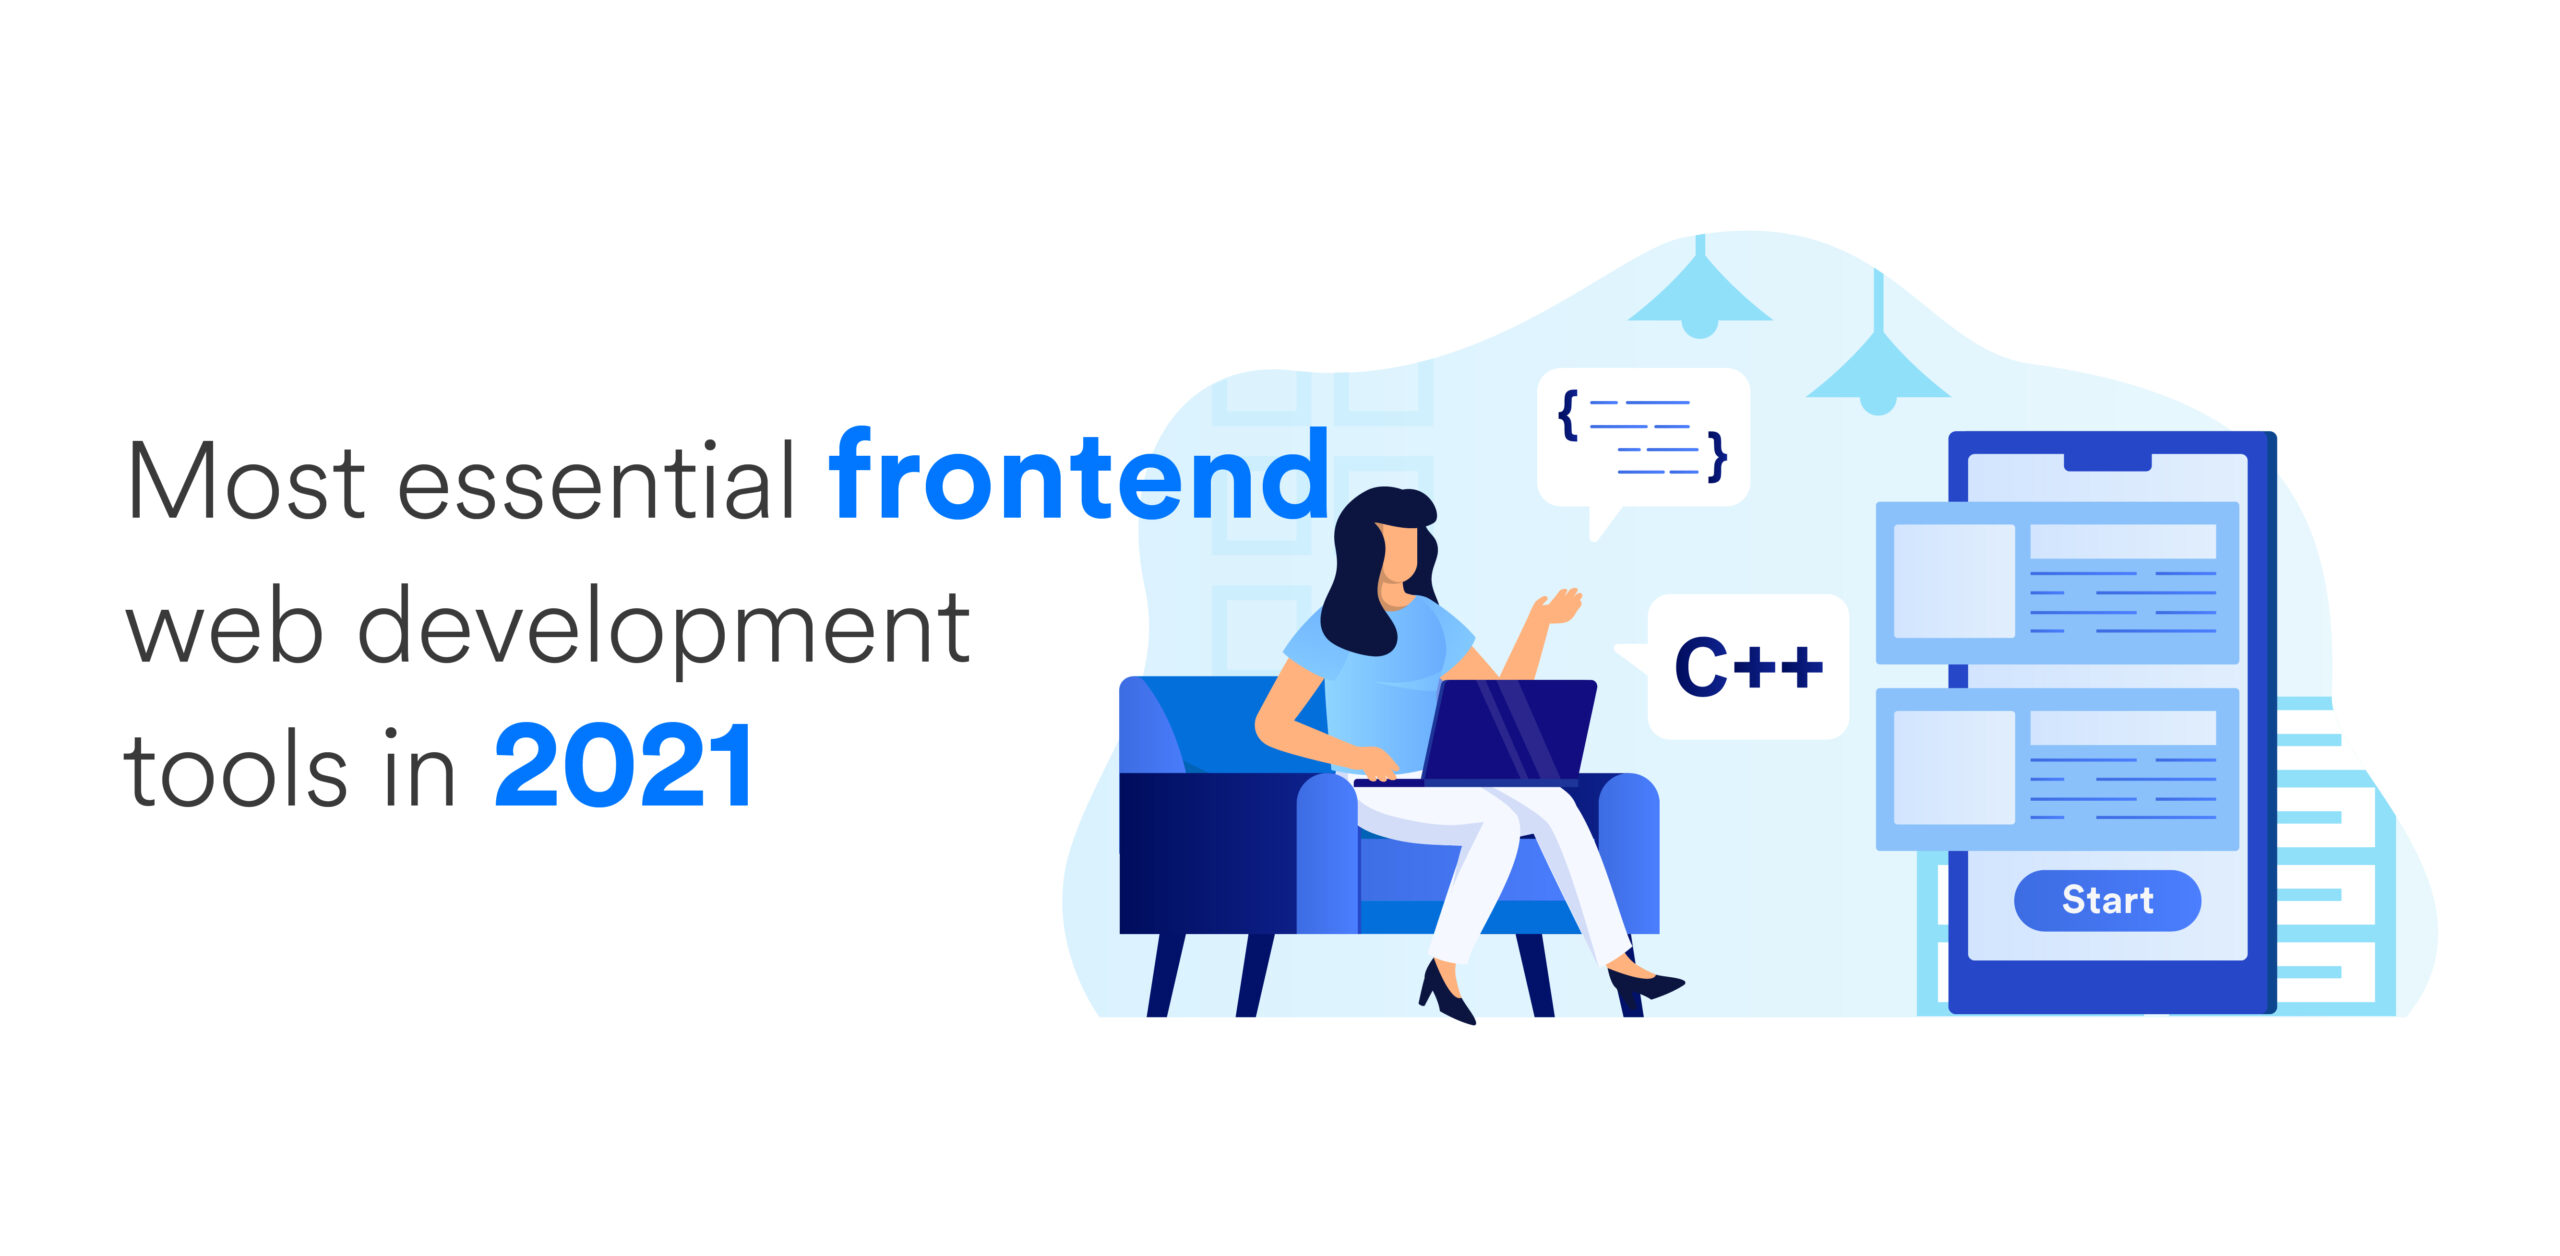 Most Essential Frontend Web Development Tools In 2021 - Domaincer Blog